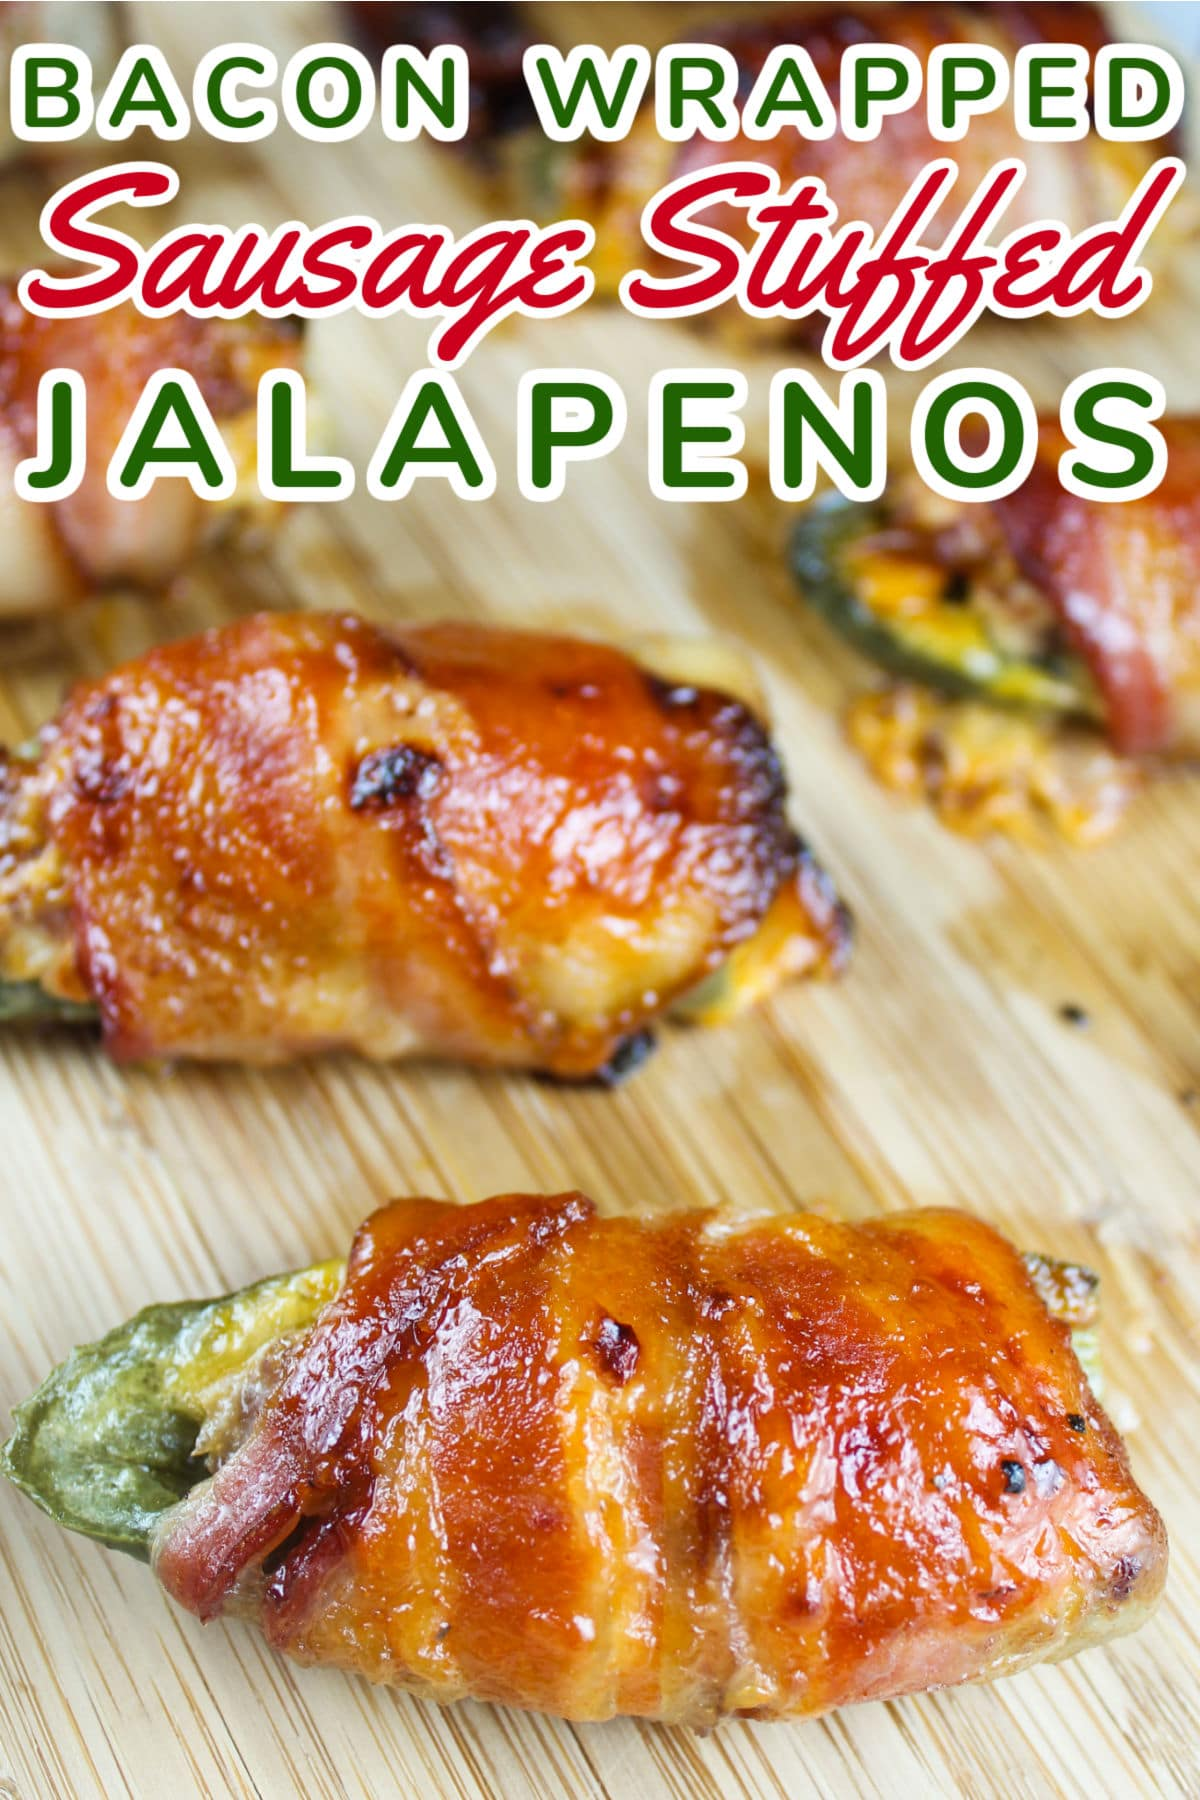 Finger lickin', lip smackin' good - that's how to describe these Sausage Stuffed Jalapenos wrapped in bacon! I literally can't even tell you how amazing these are - you should probably double this recipe - because you're going to eat them ALL!!!!!  via @foodhussy